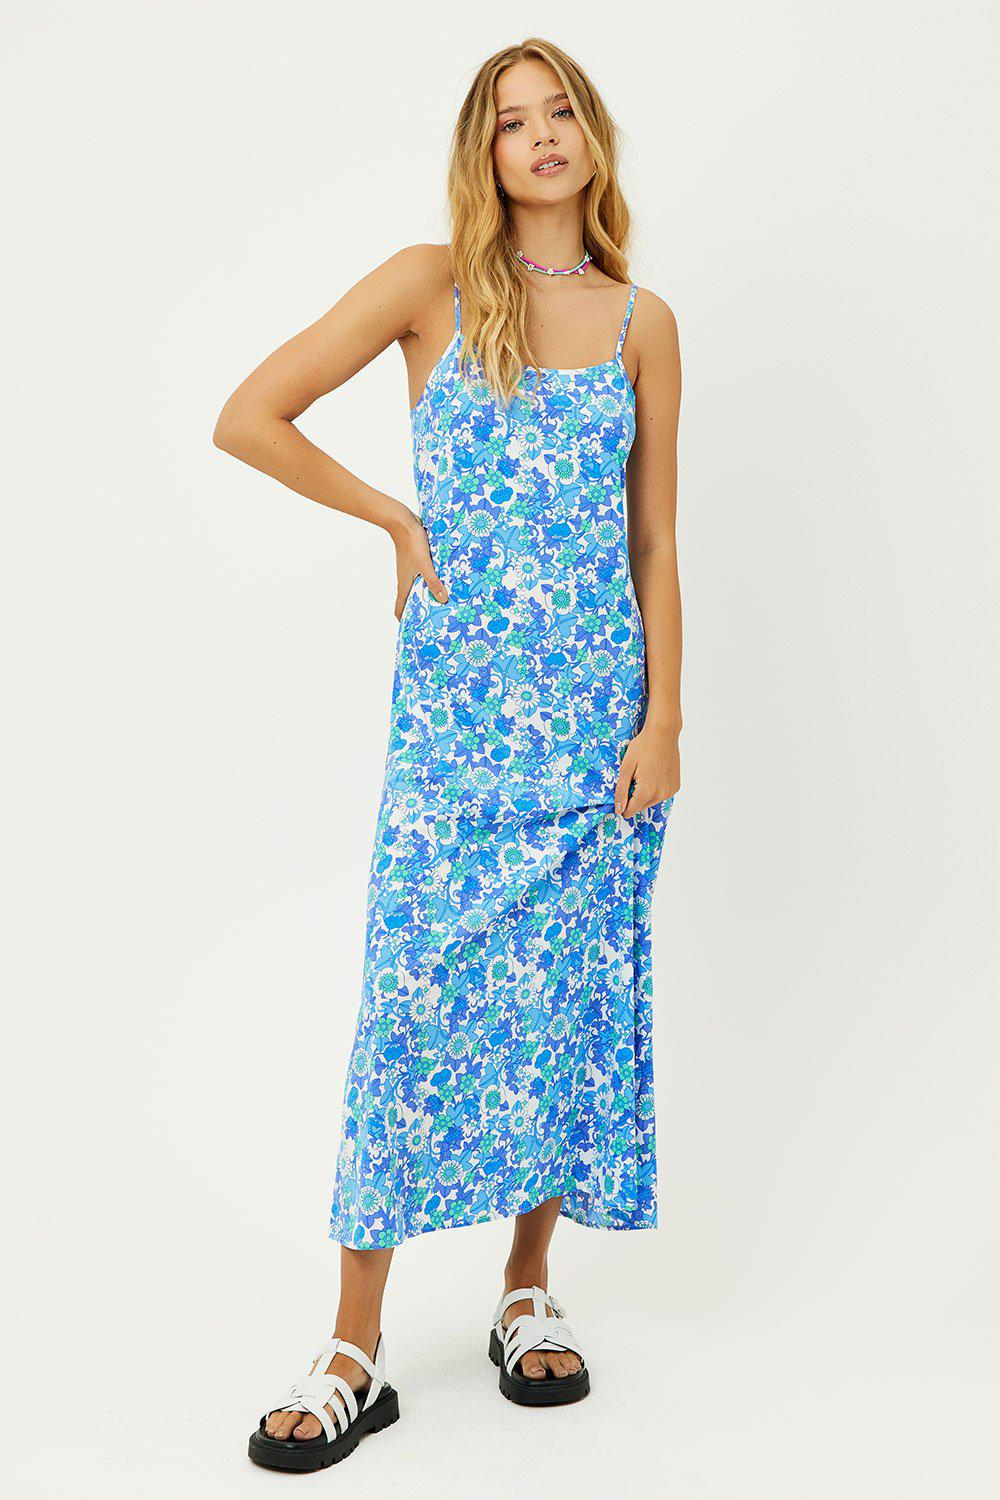 Isabel Floral Maxi Dress - Morning Glory